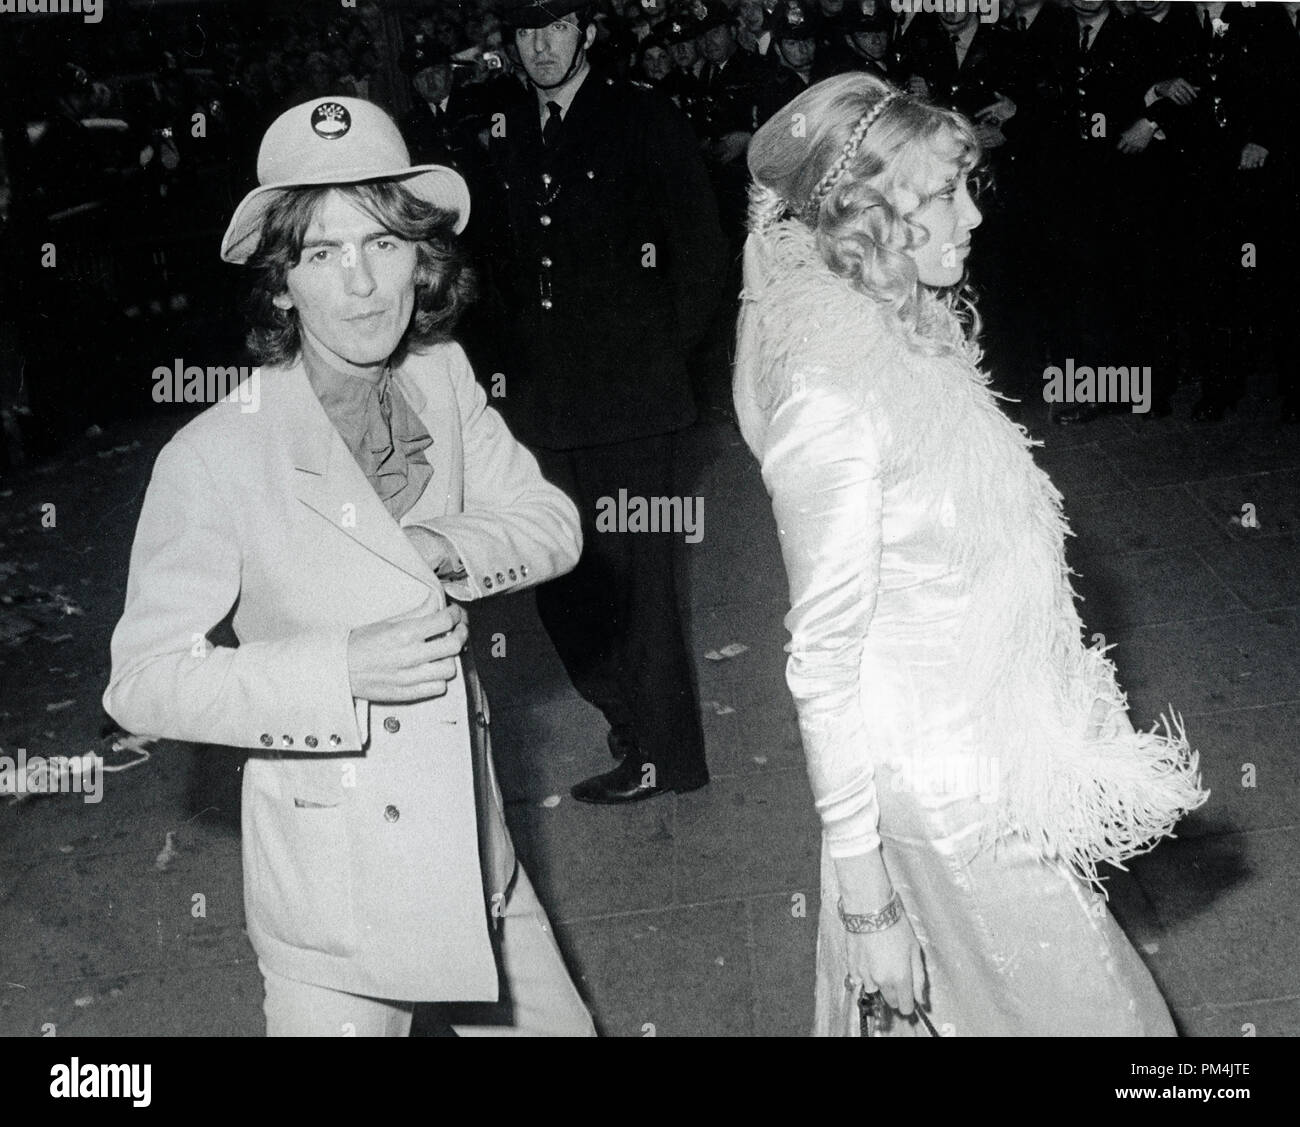 Beatle George Harrison and wife Pattie Boyd, July18,1968. File Reference #1013_042 THA © JRC /The Hollywood Archive - All Rights Reserved. - Stock Image